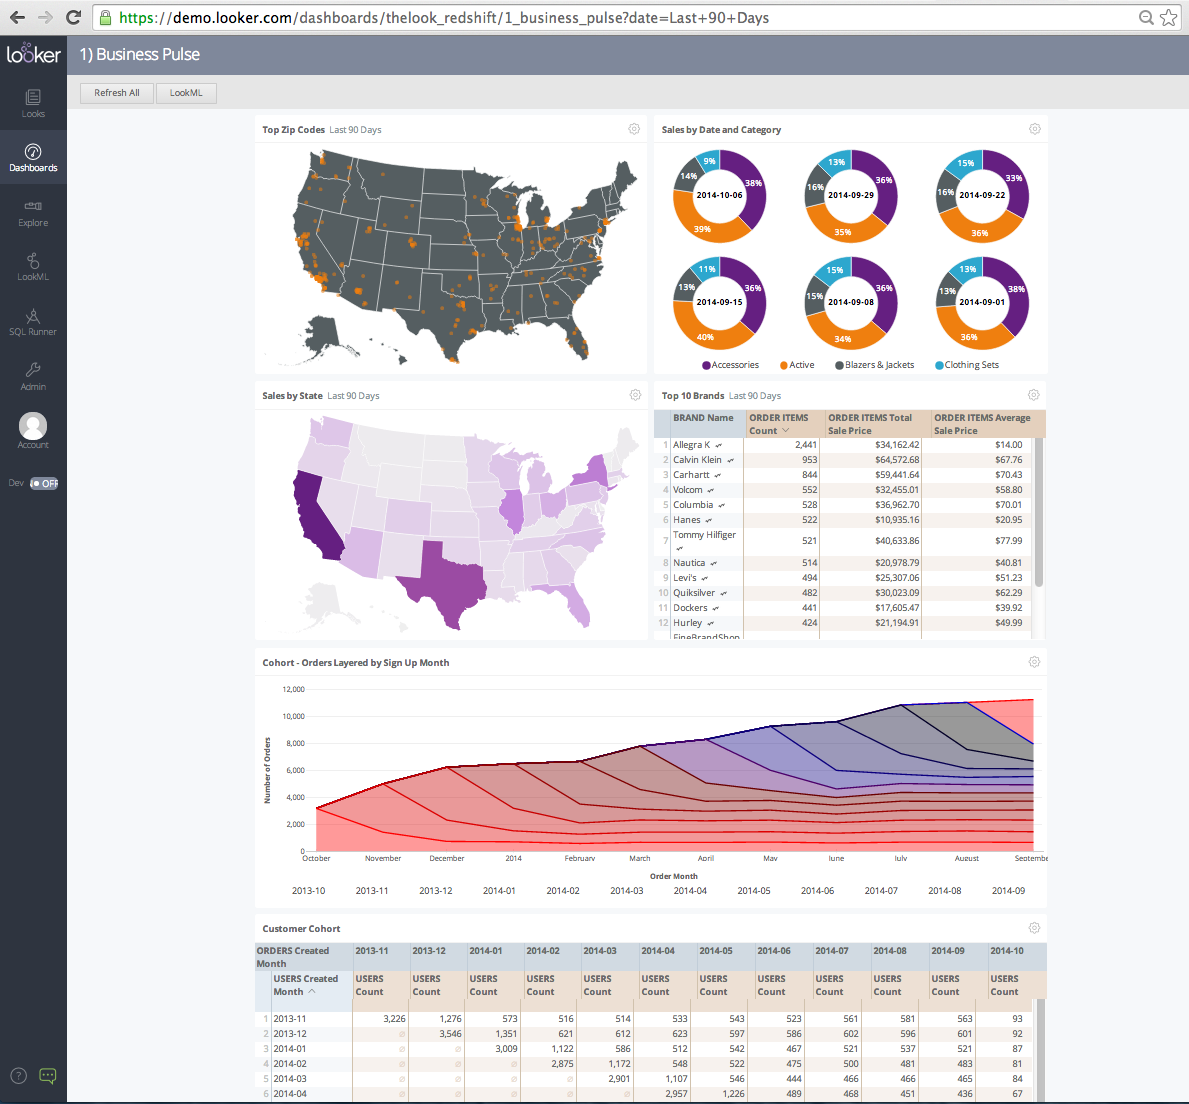 Customizable charts, reports and graphs